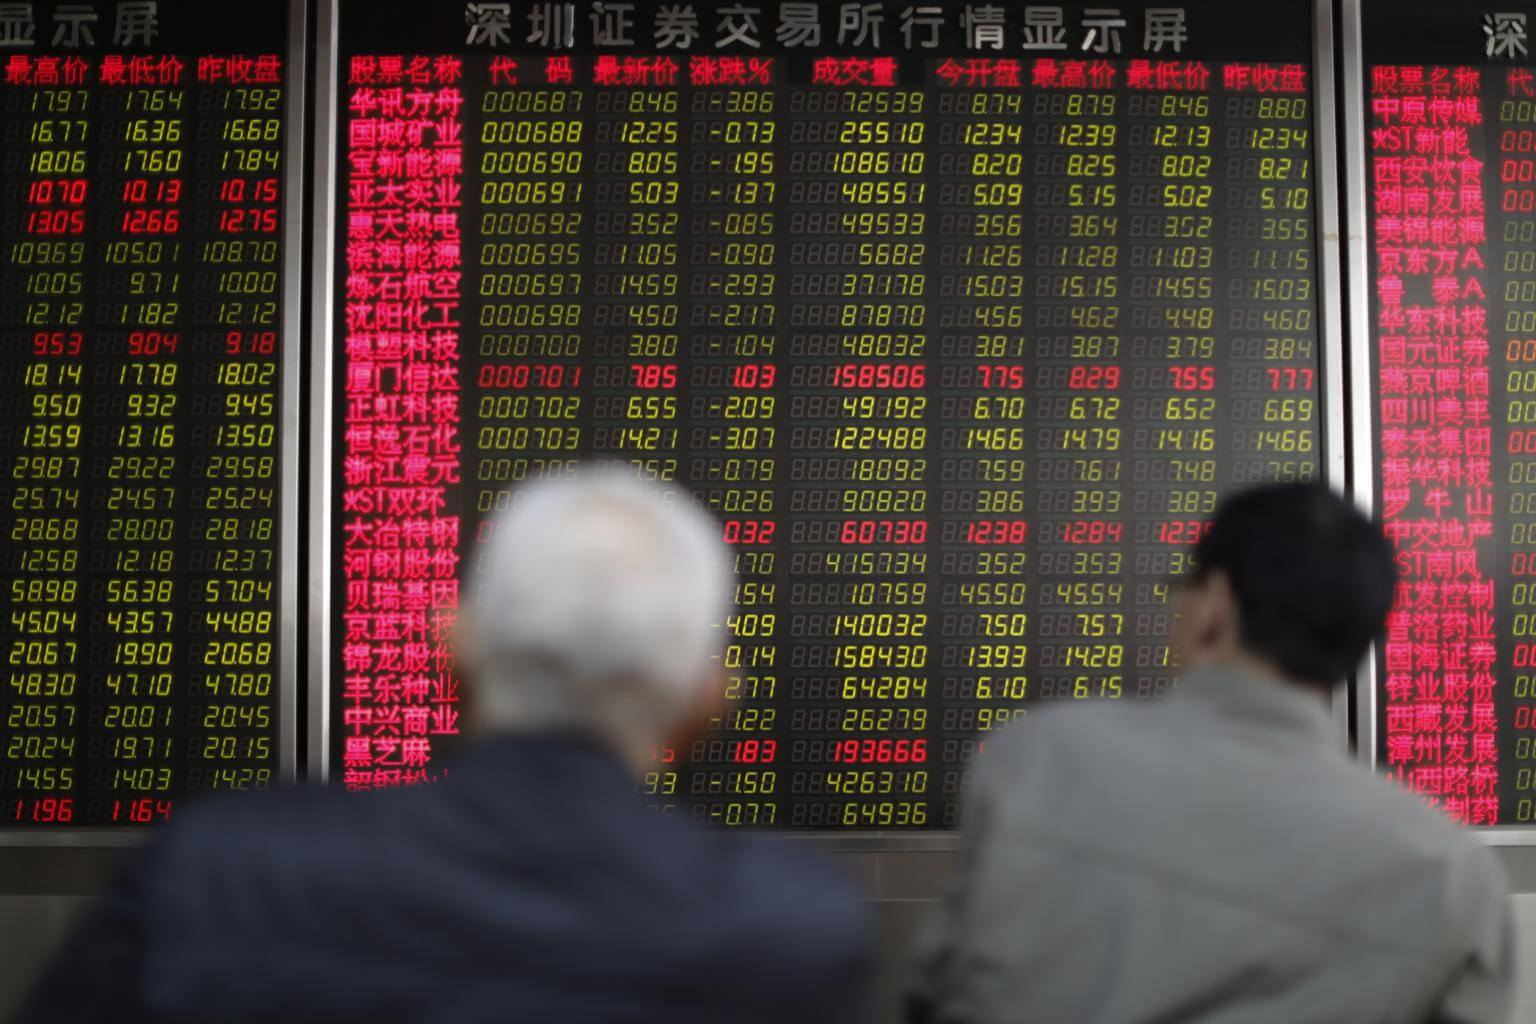 Asian Shares Reach 7-Month High, But Investors Are Cautious